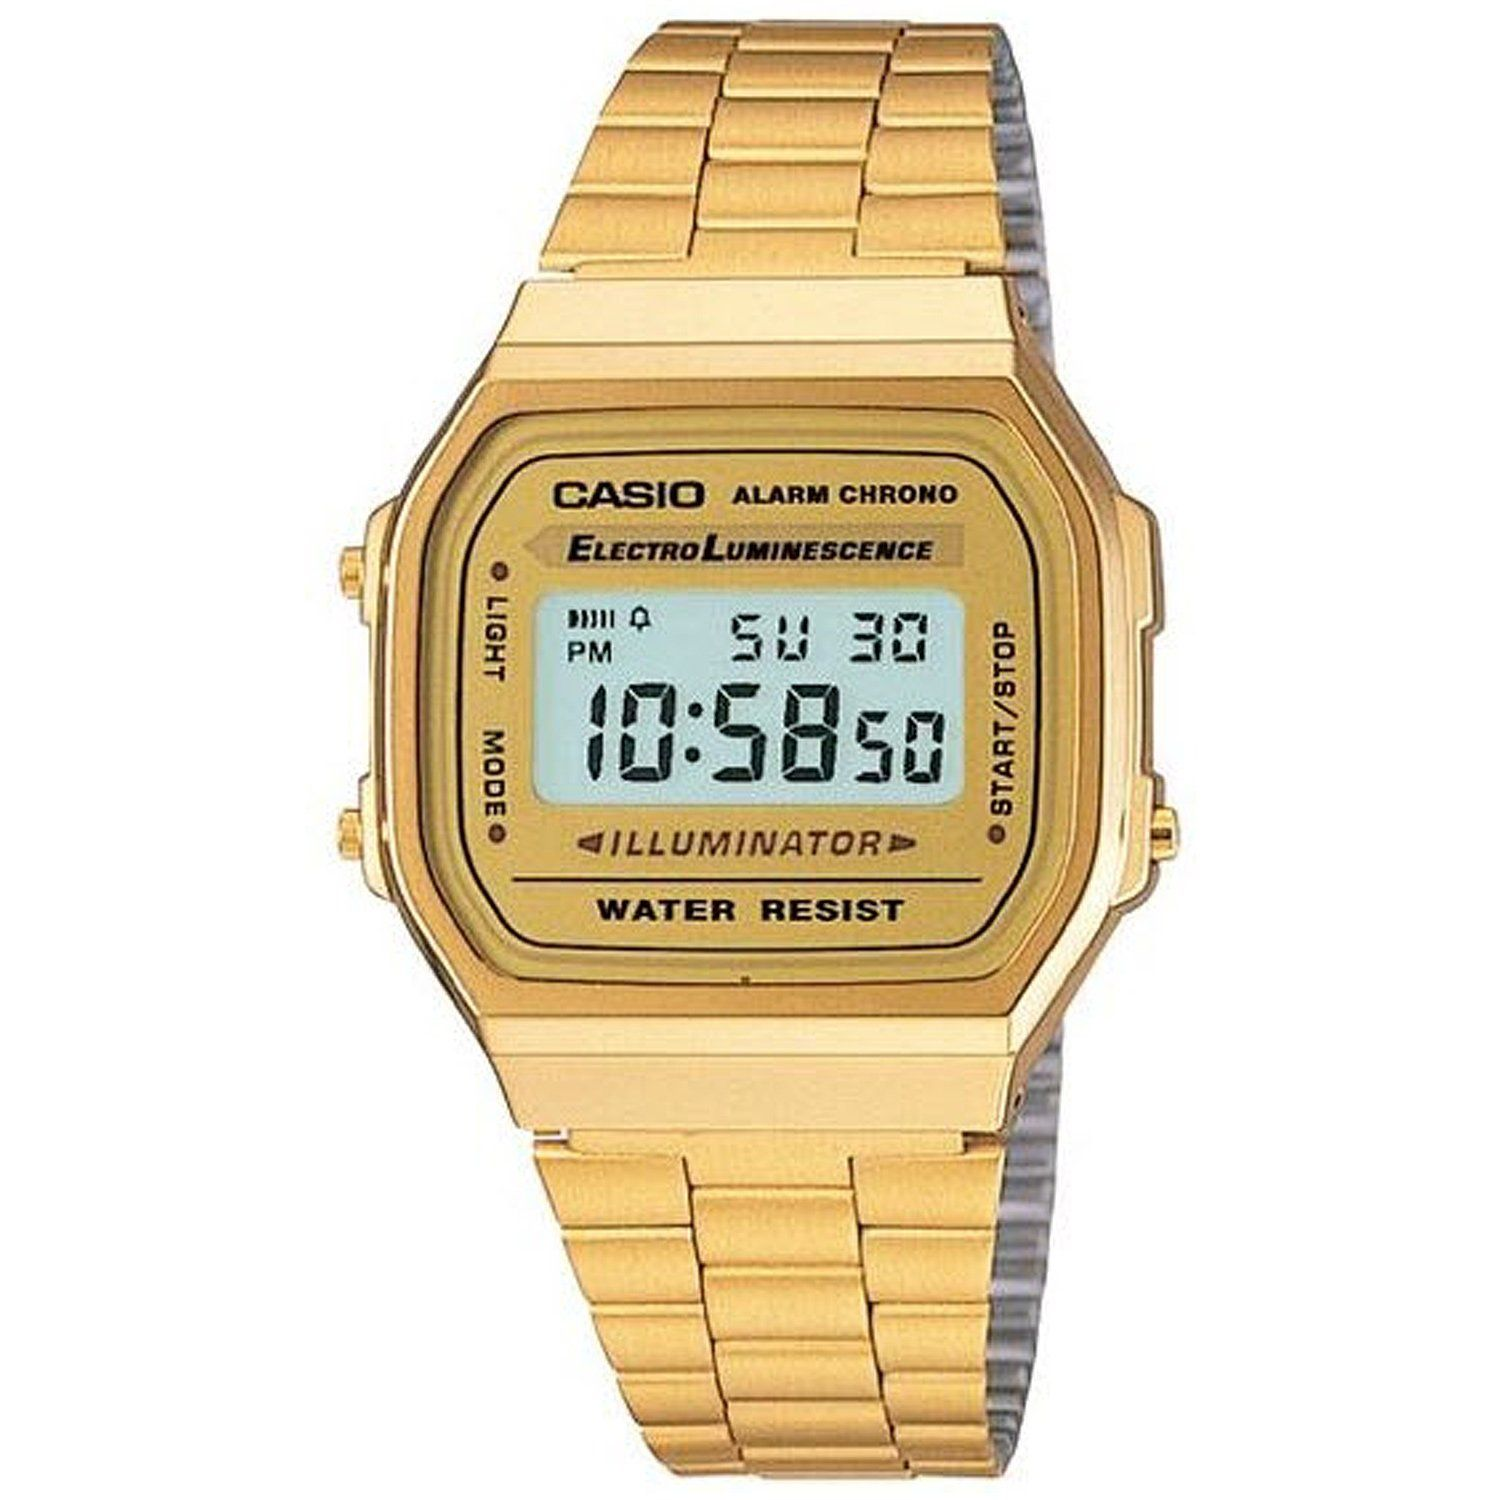 b43ed59de682 Amazon.com  Casio Classic Digital Watch